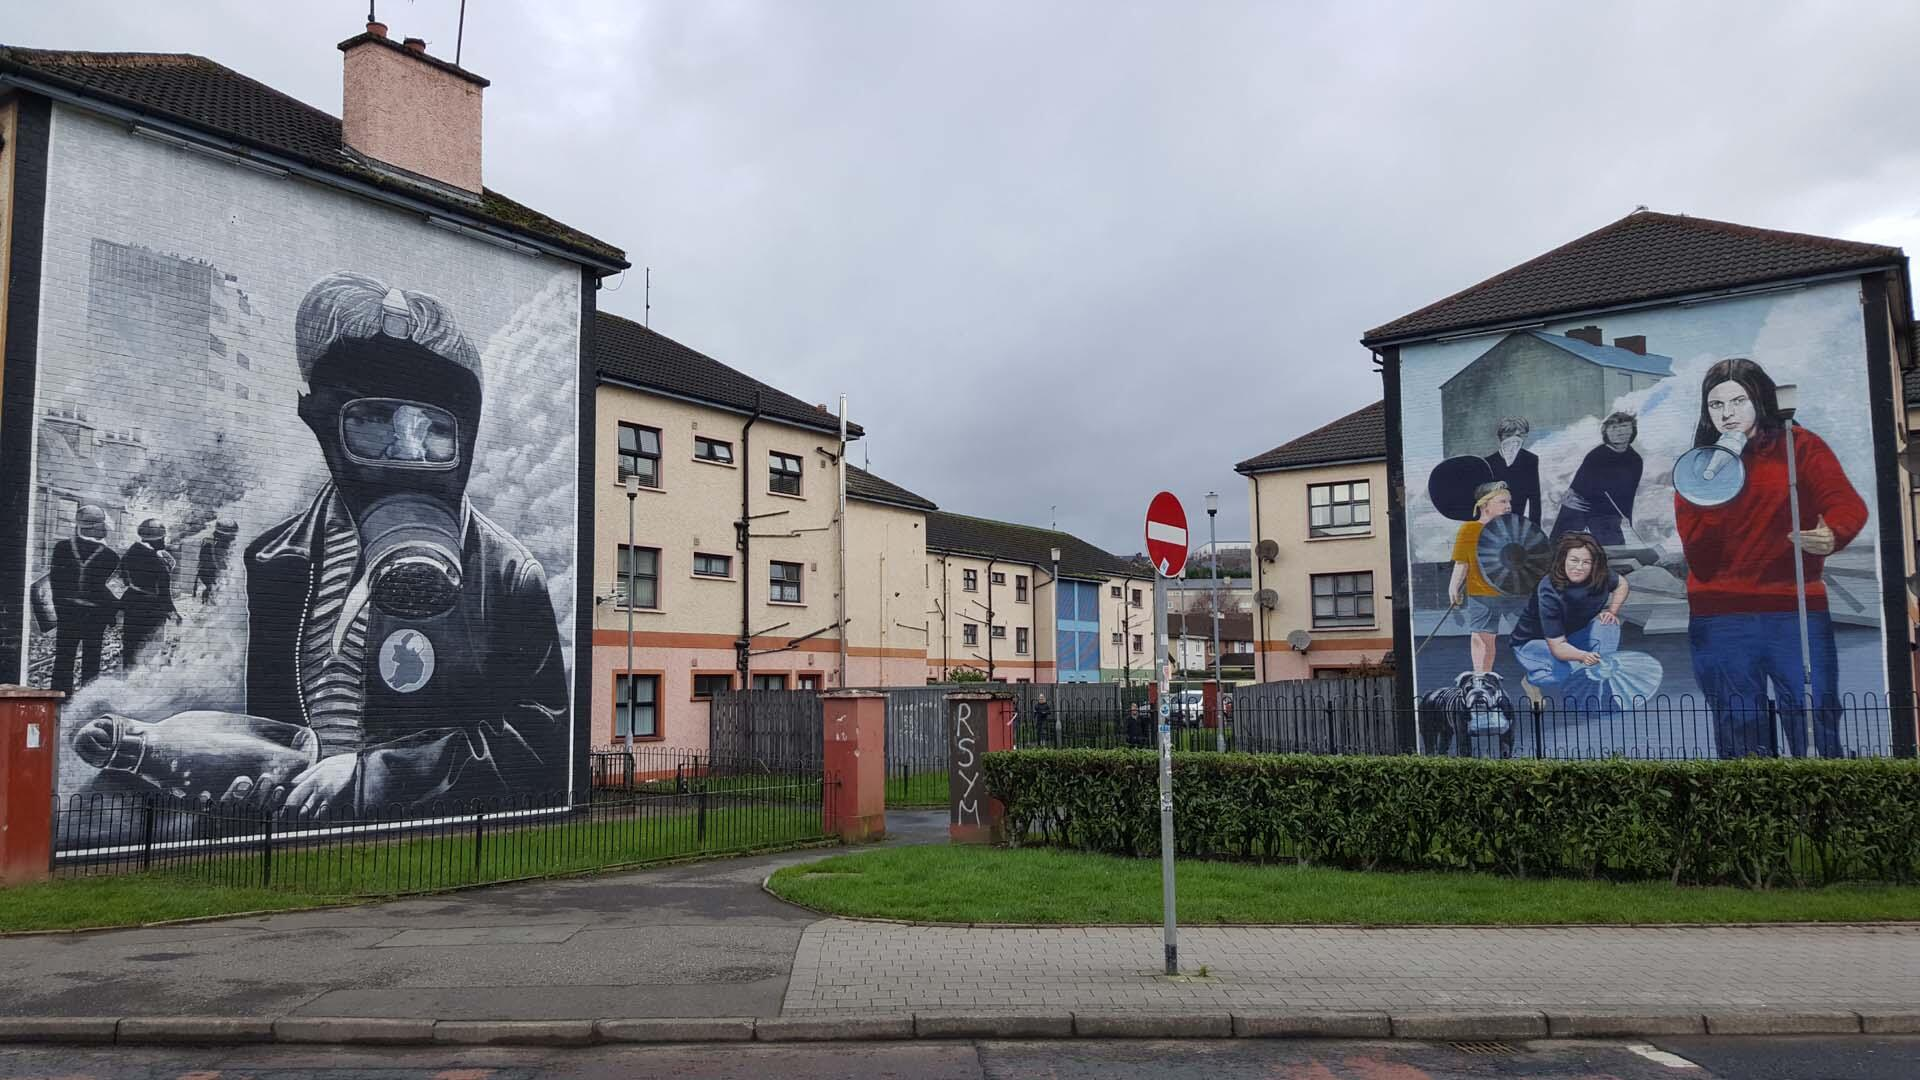 Walls painted in the Bogside, in the Catholic district of Derry.